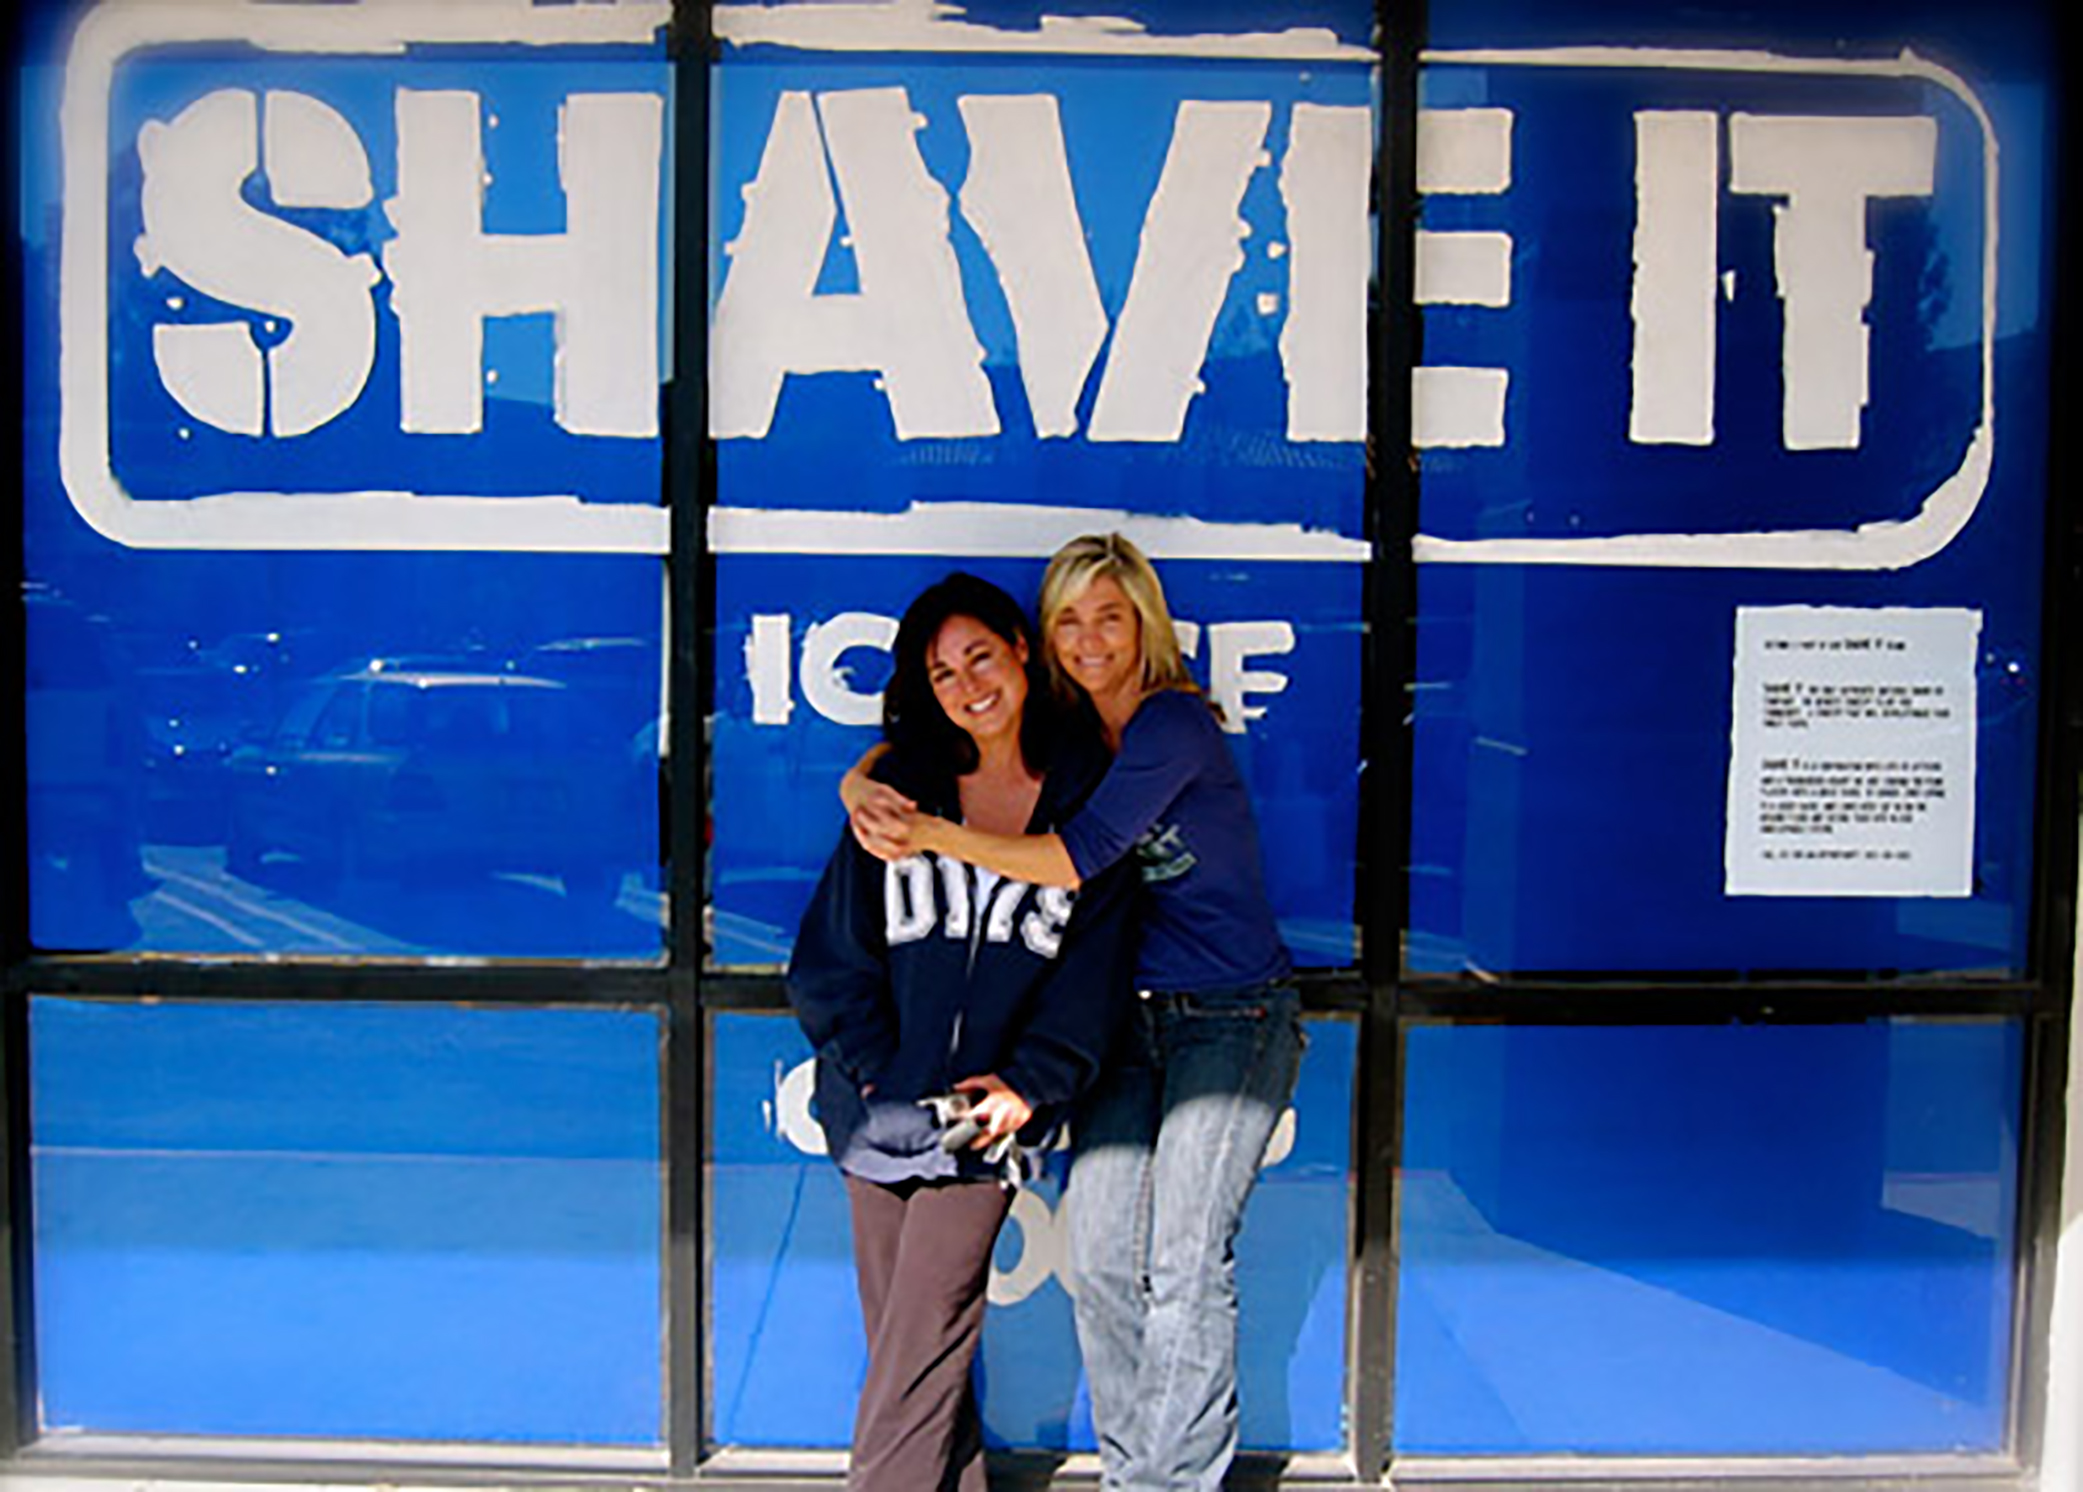 Shave It Owners Lisa Kudirka and Karen Bain